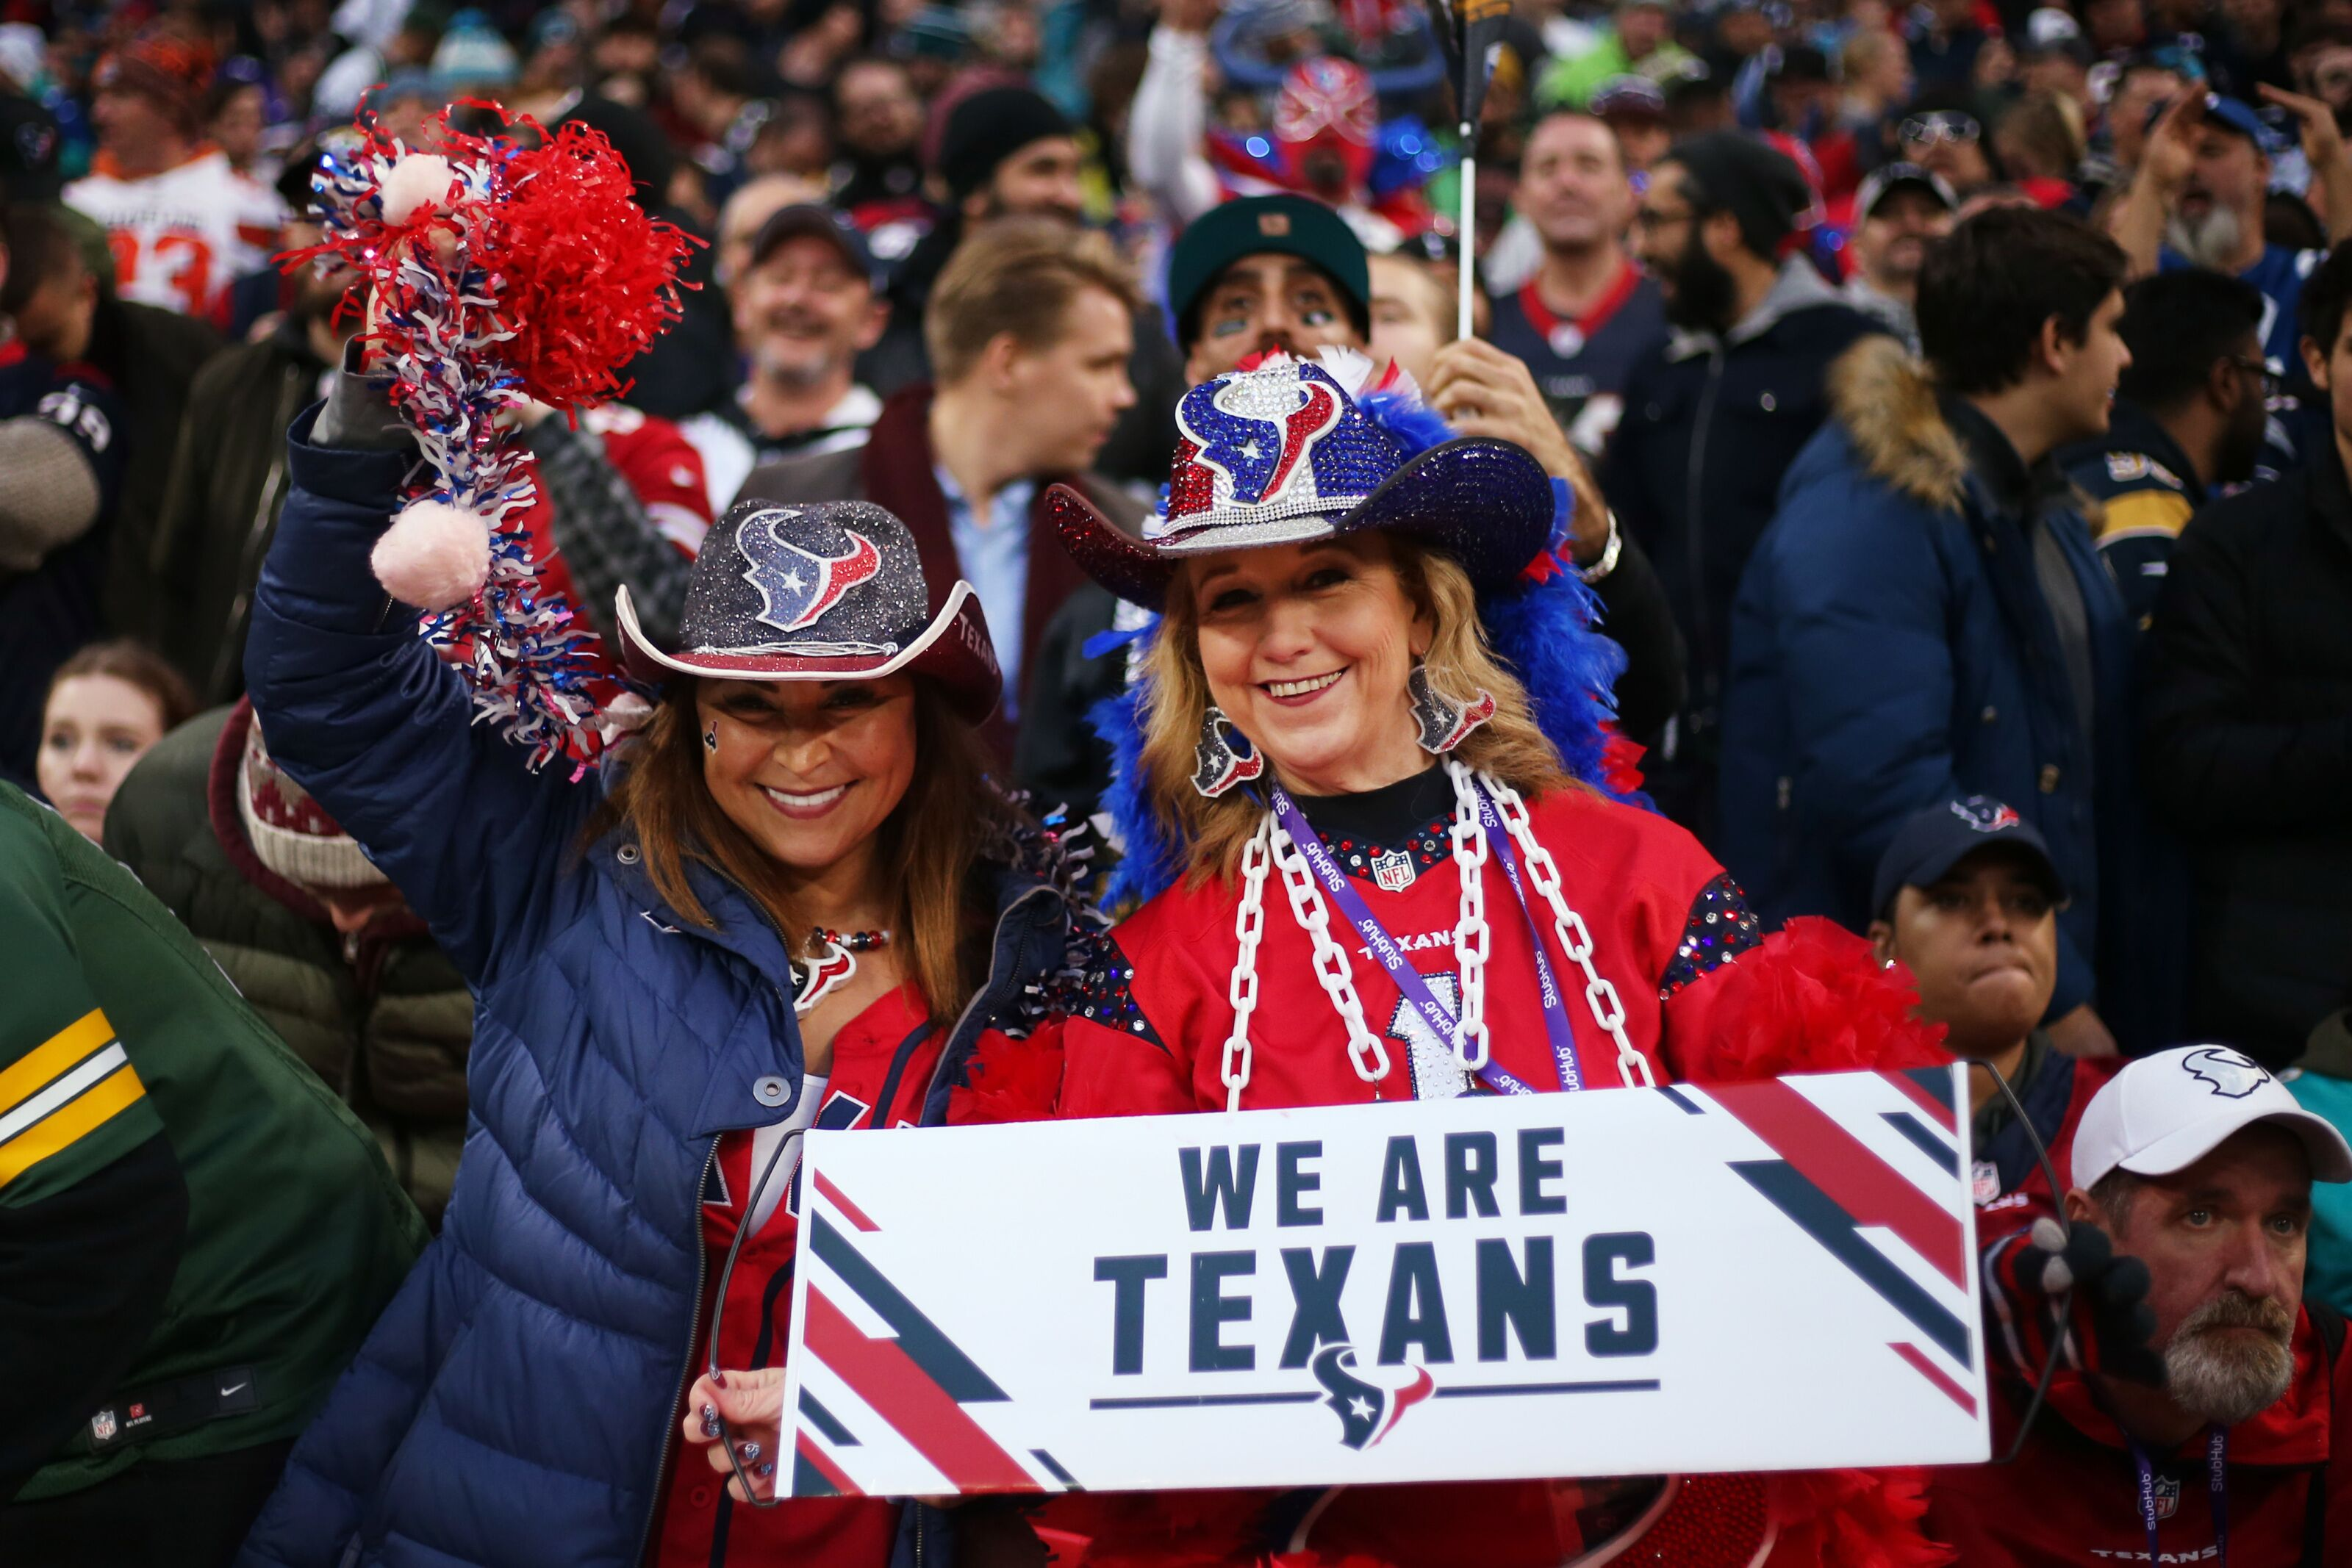 FanSided 250: How Houston Texans fans can move up the rankings next year